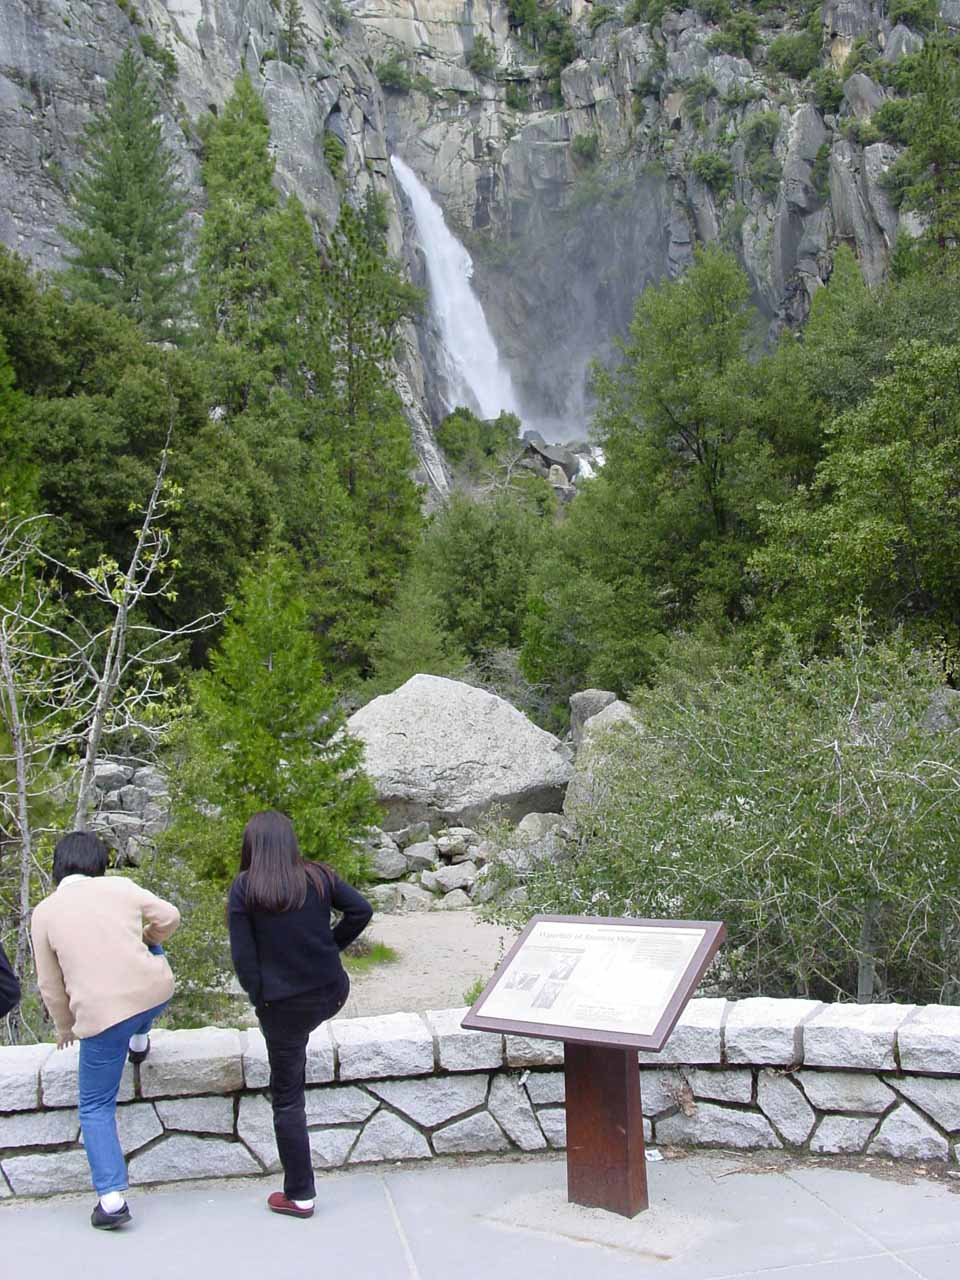 Cascade Falls from the official viewpoint in context in April 2005